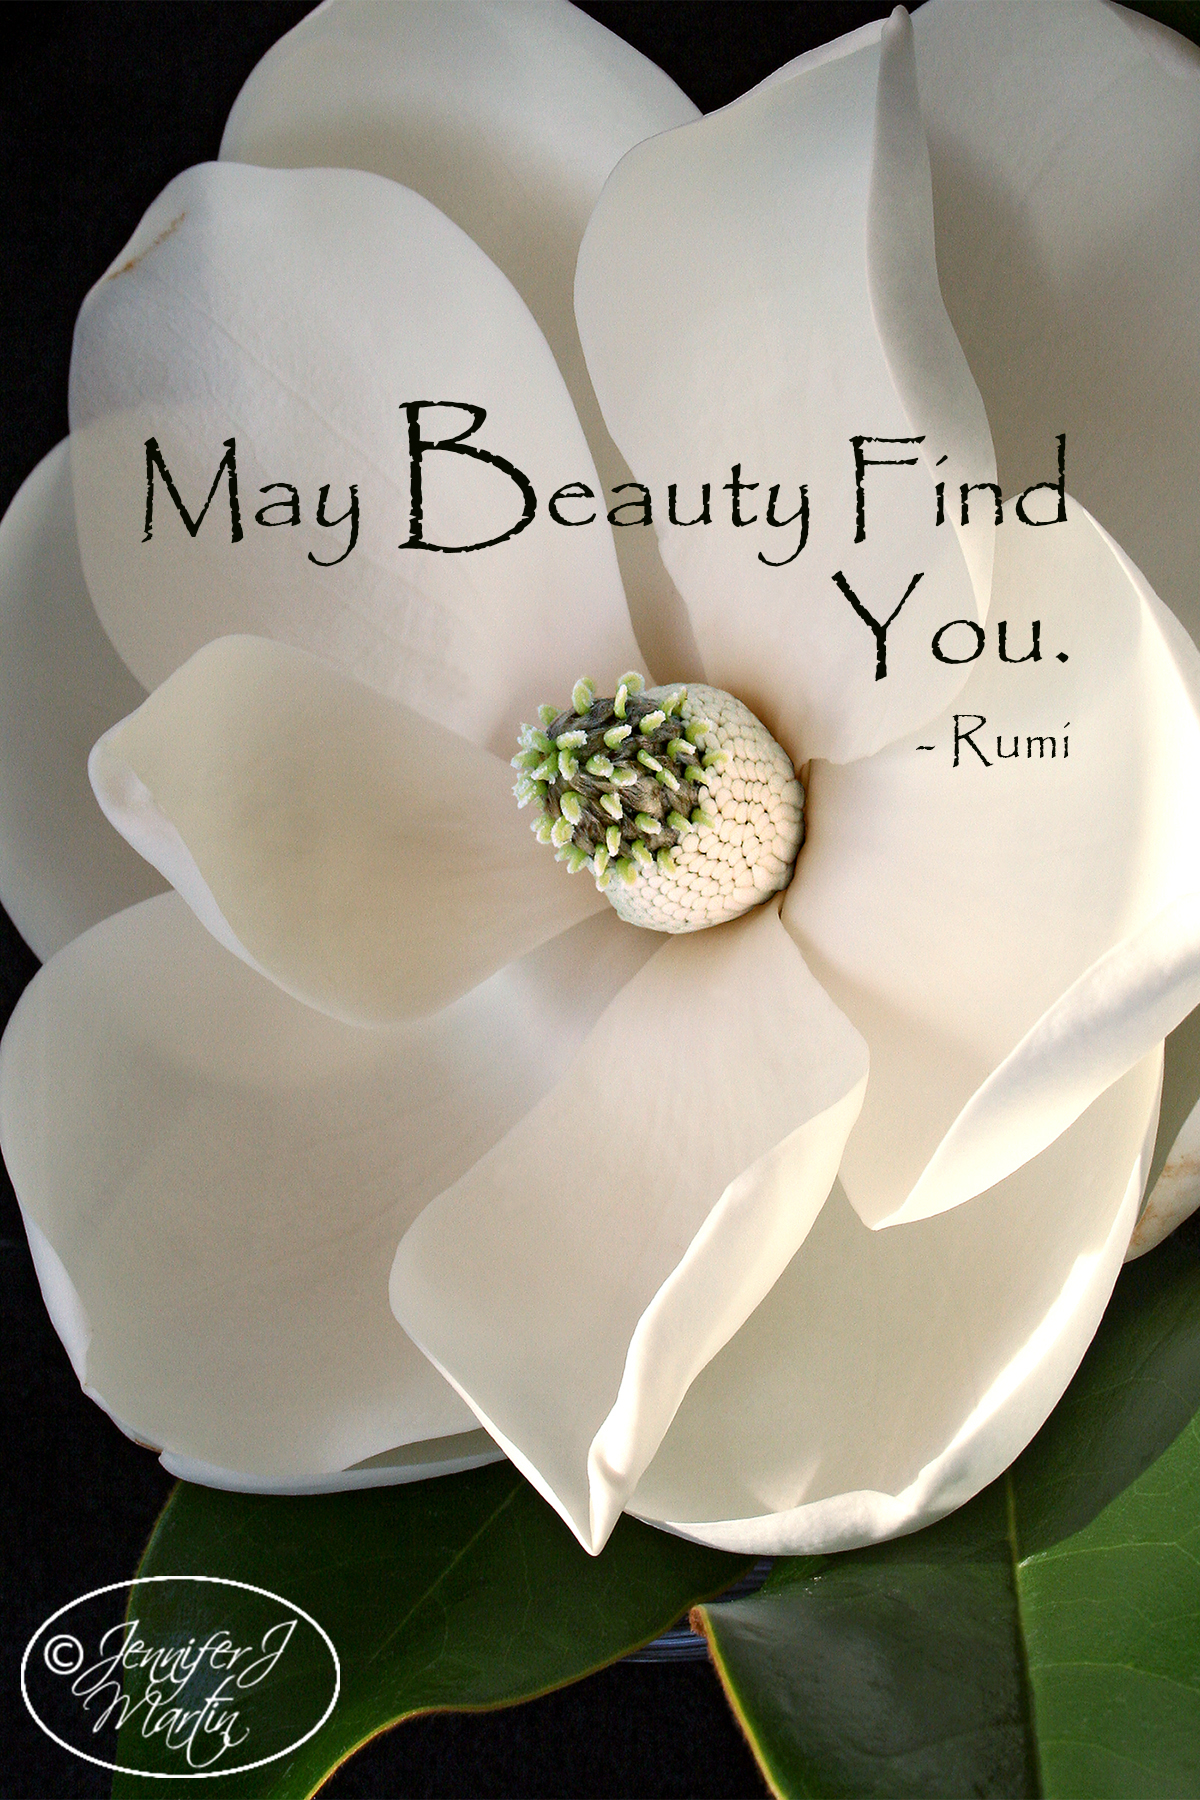 May Beauty Find You (Rumi) - Magnolia